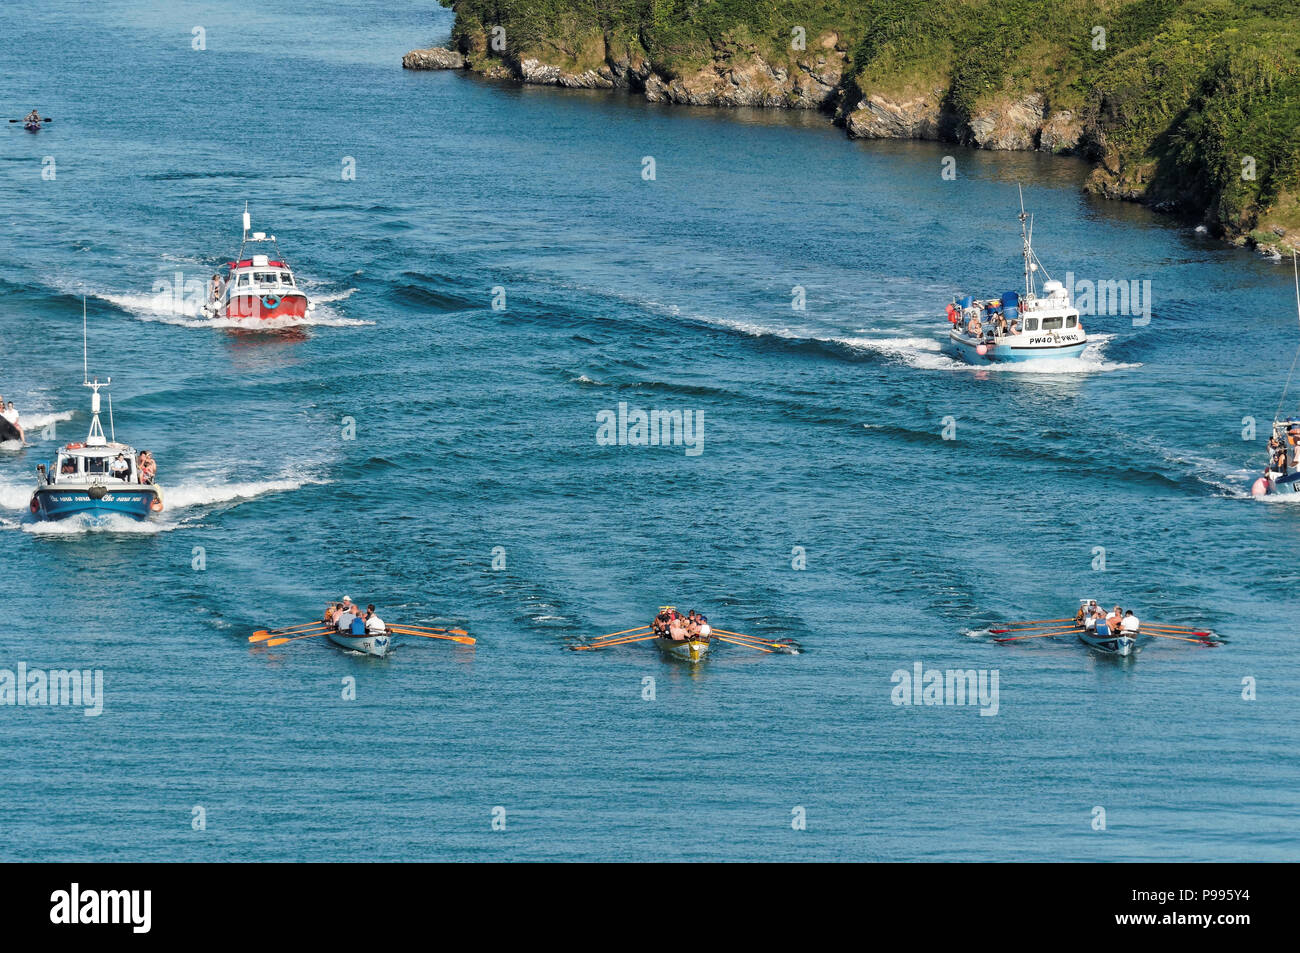 Traditional pilot Gig rowing contest for Atkinson Trophy,Gannel river to Newquay Harbour,UK 14Th, July, 2018  Robert Taylor/Alamy Live News.  Newquay, - Stock Image